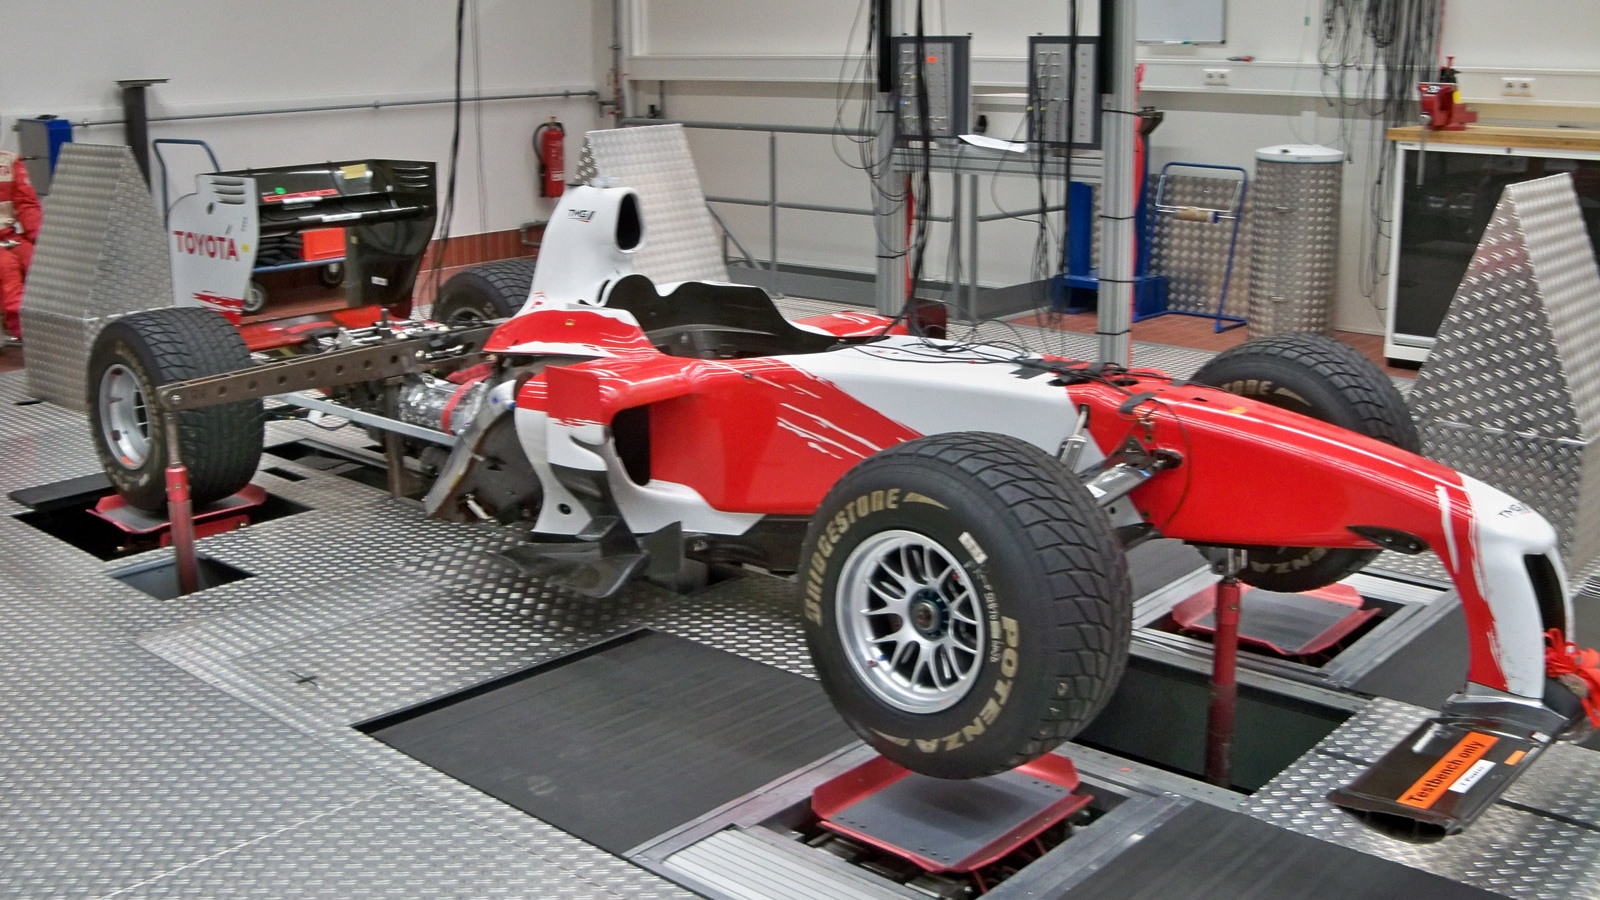 Toyota Motorsport GmbH's facility in Cologne, Germany